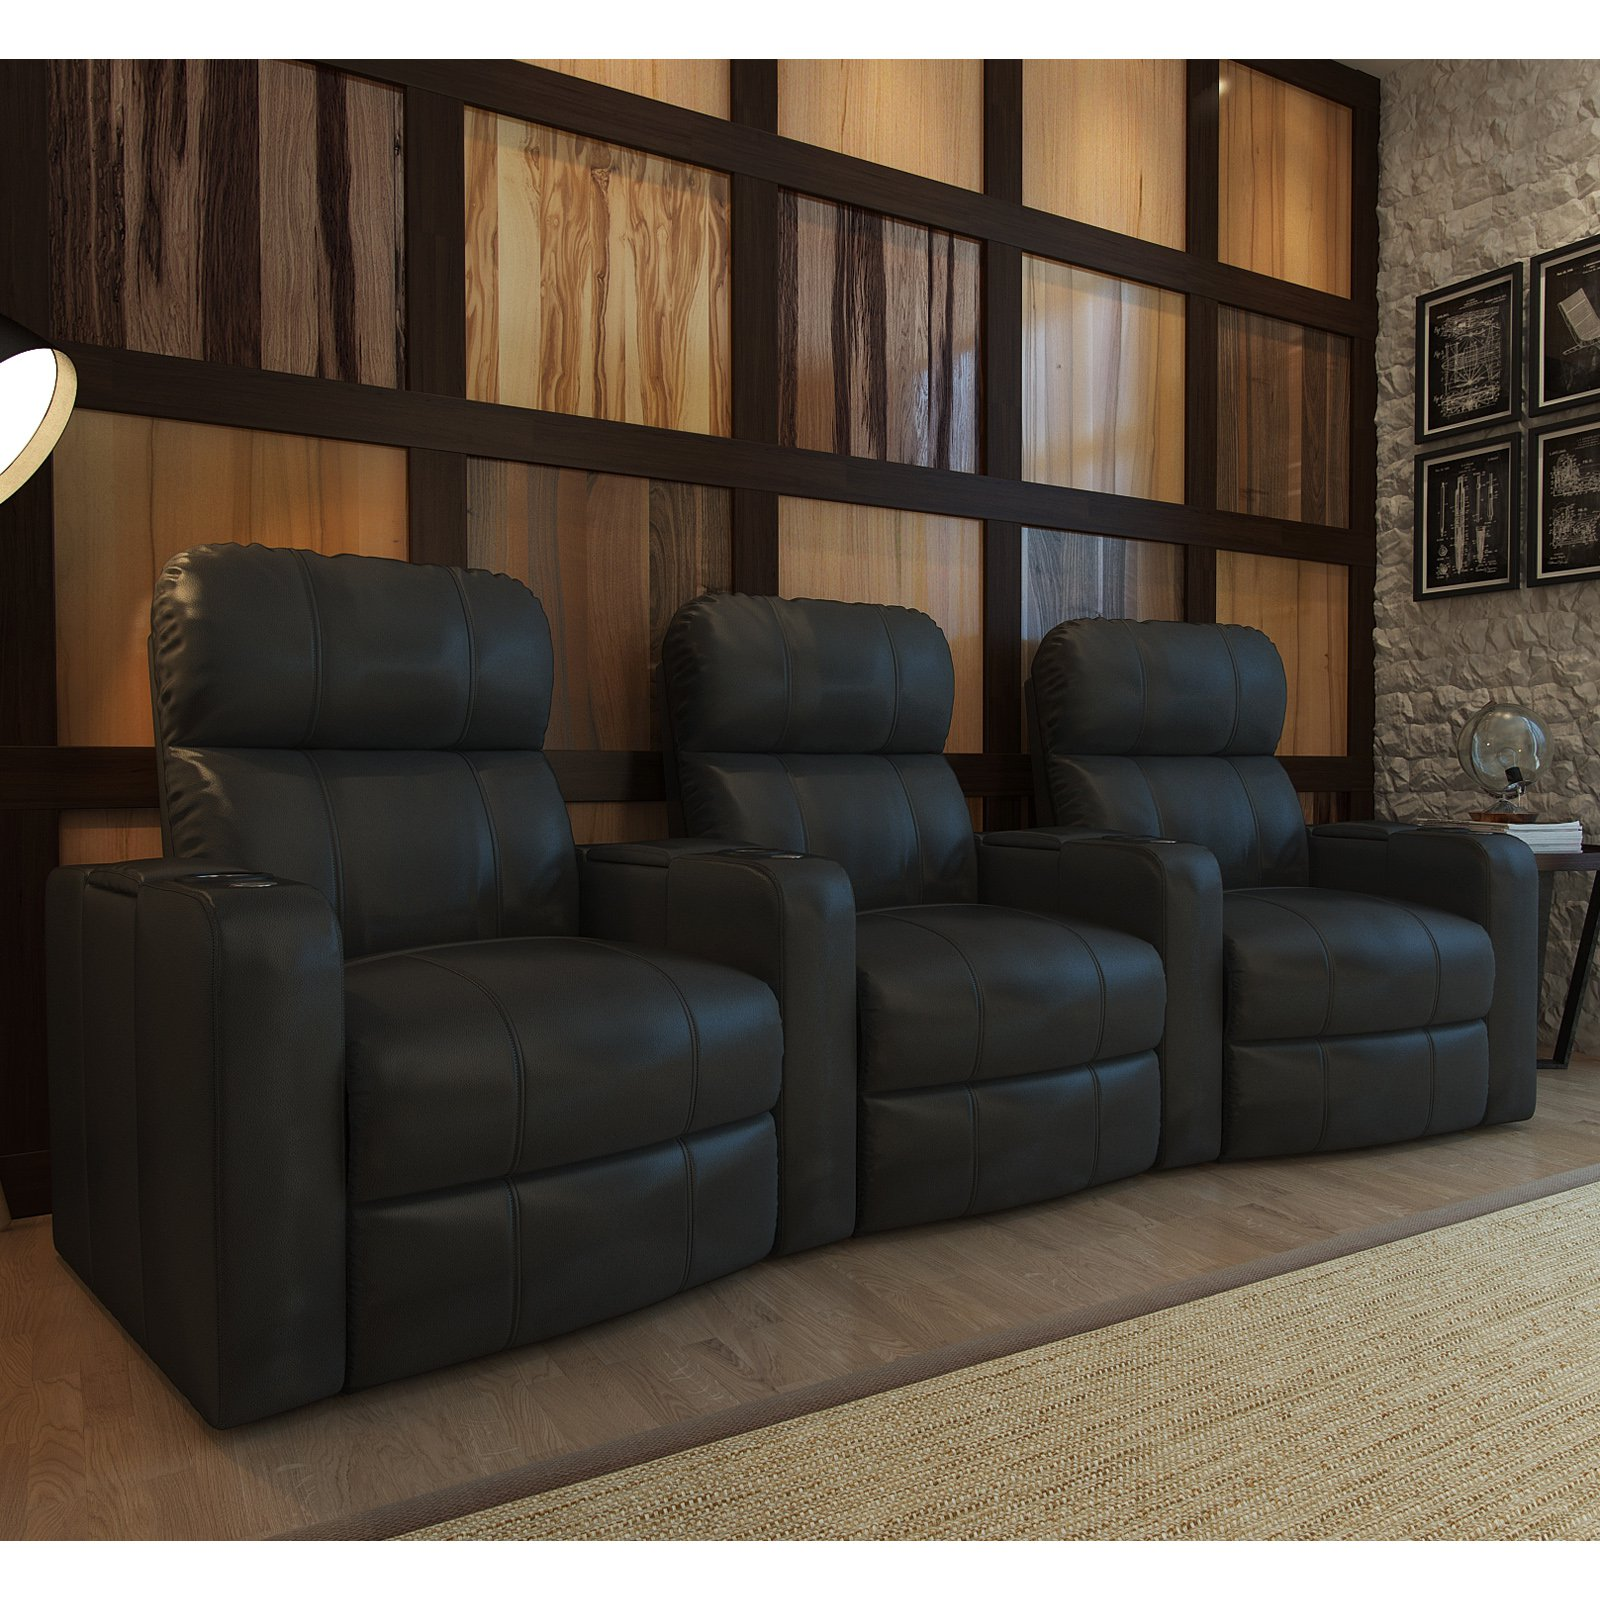 Octane Turbo XL700 3 Seater Curved Bonded Leather Home Theater Seating